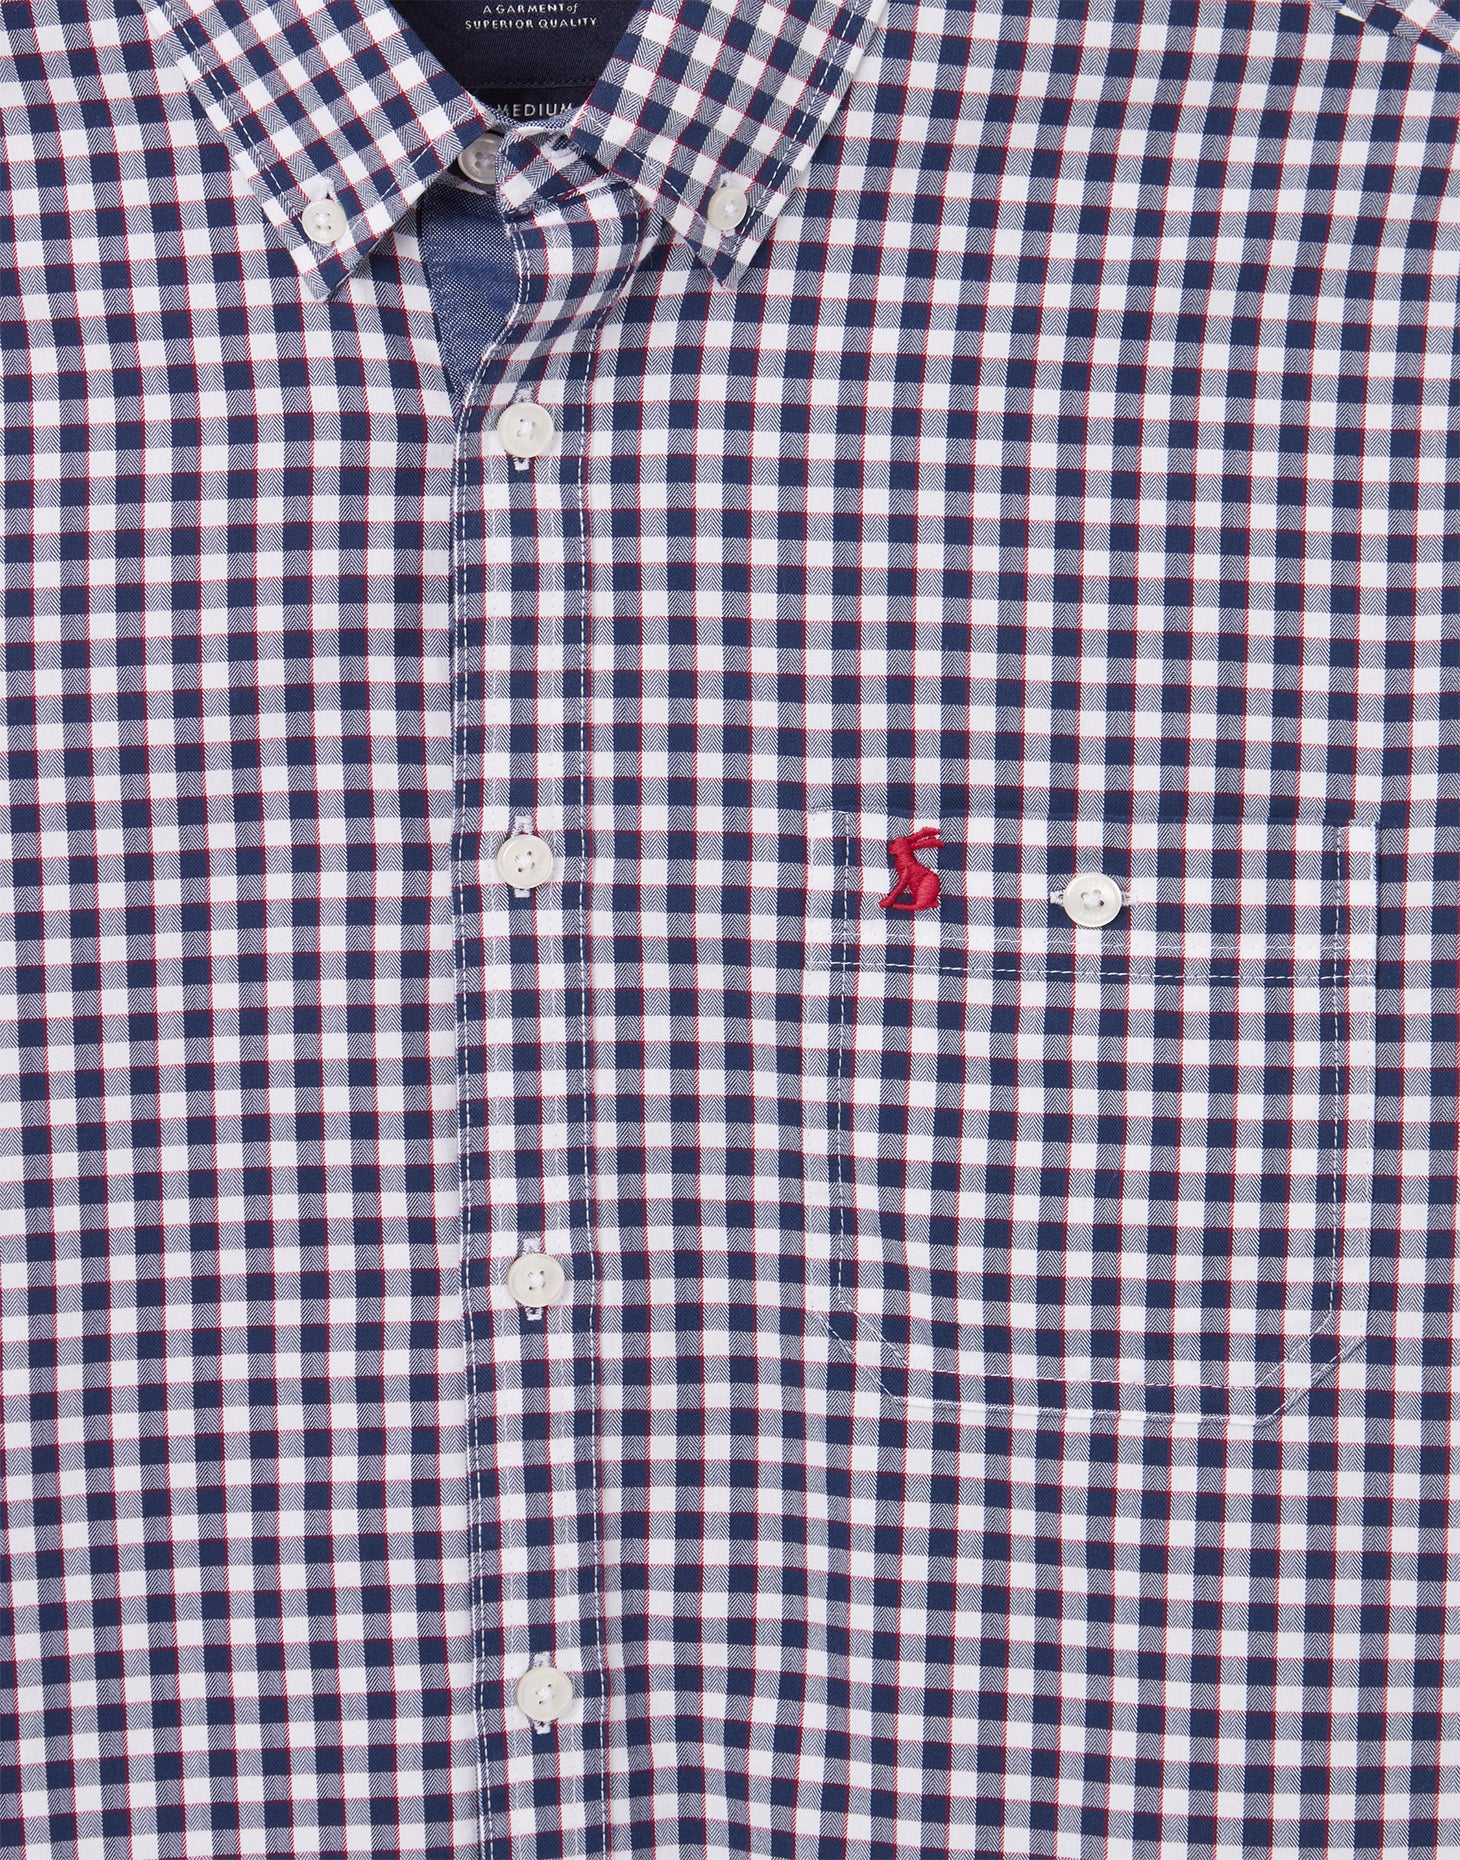 Joules Abbott Long Sleeve Classic Fit Peached Poplin Shirt for Men in Blue White Check